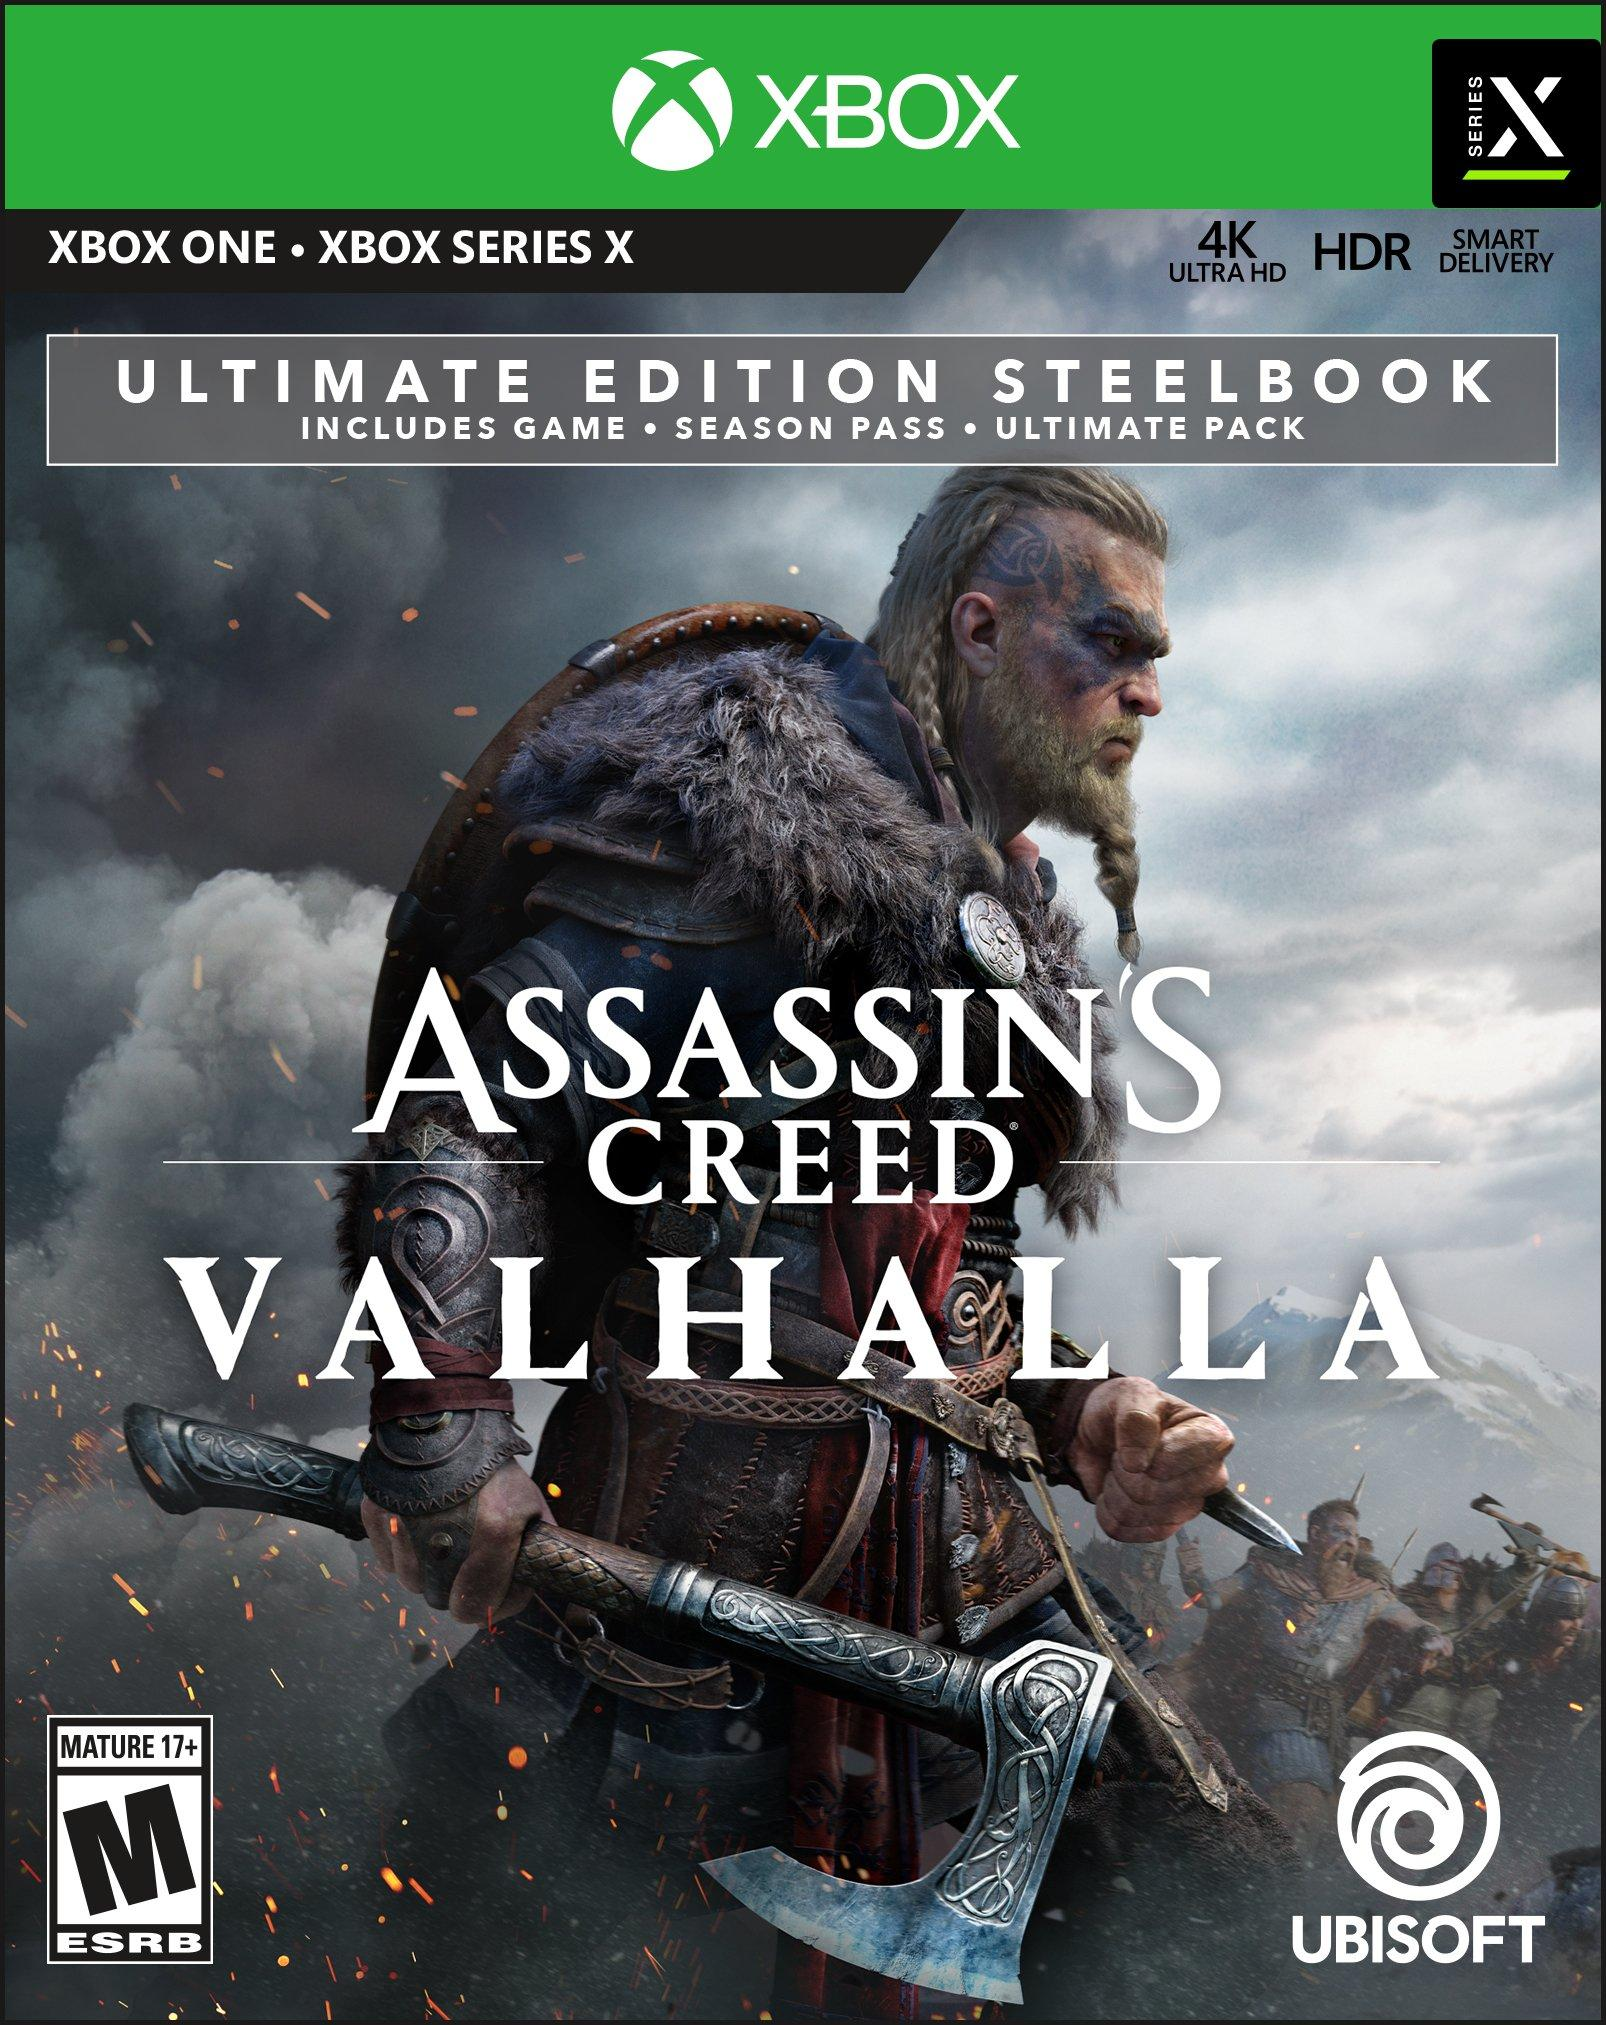 Assassin S Creed Valhalla Ultimate Steelbook Edition Only At Gamestop Xbox One Gamestop